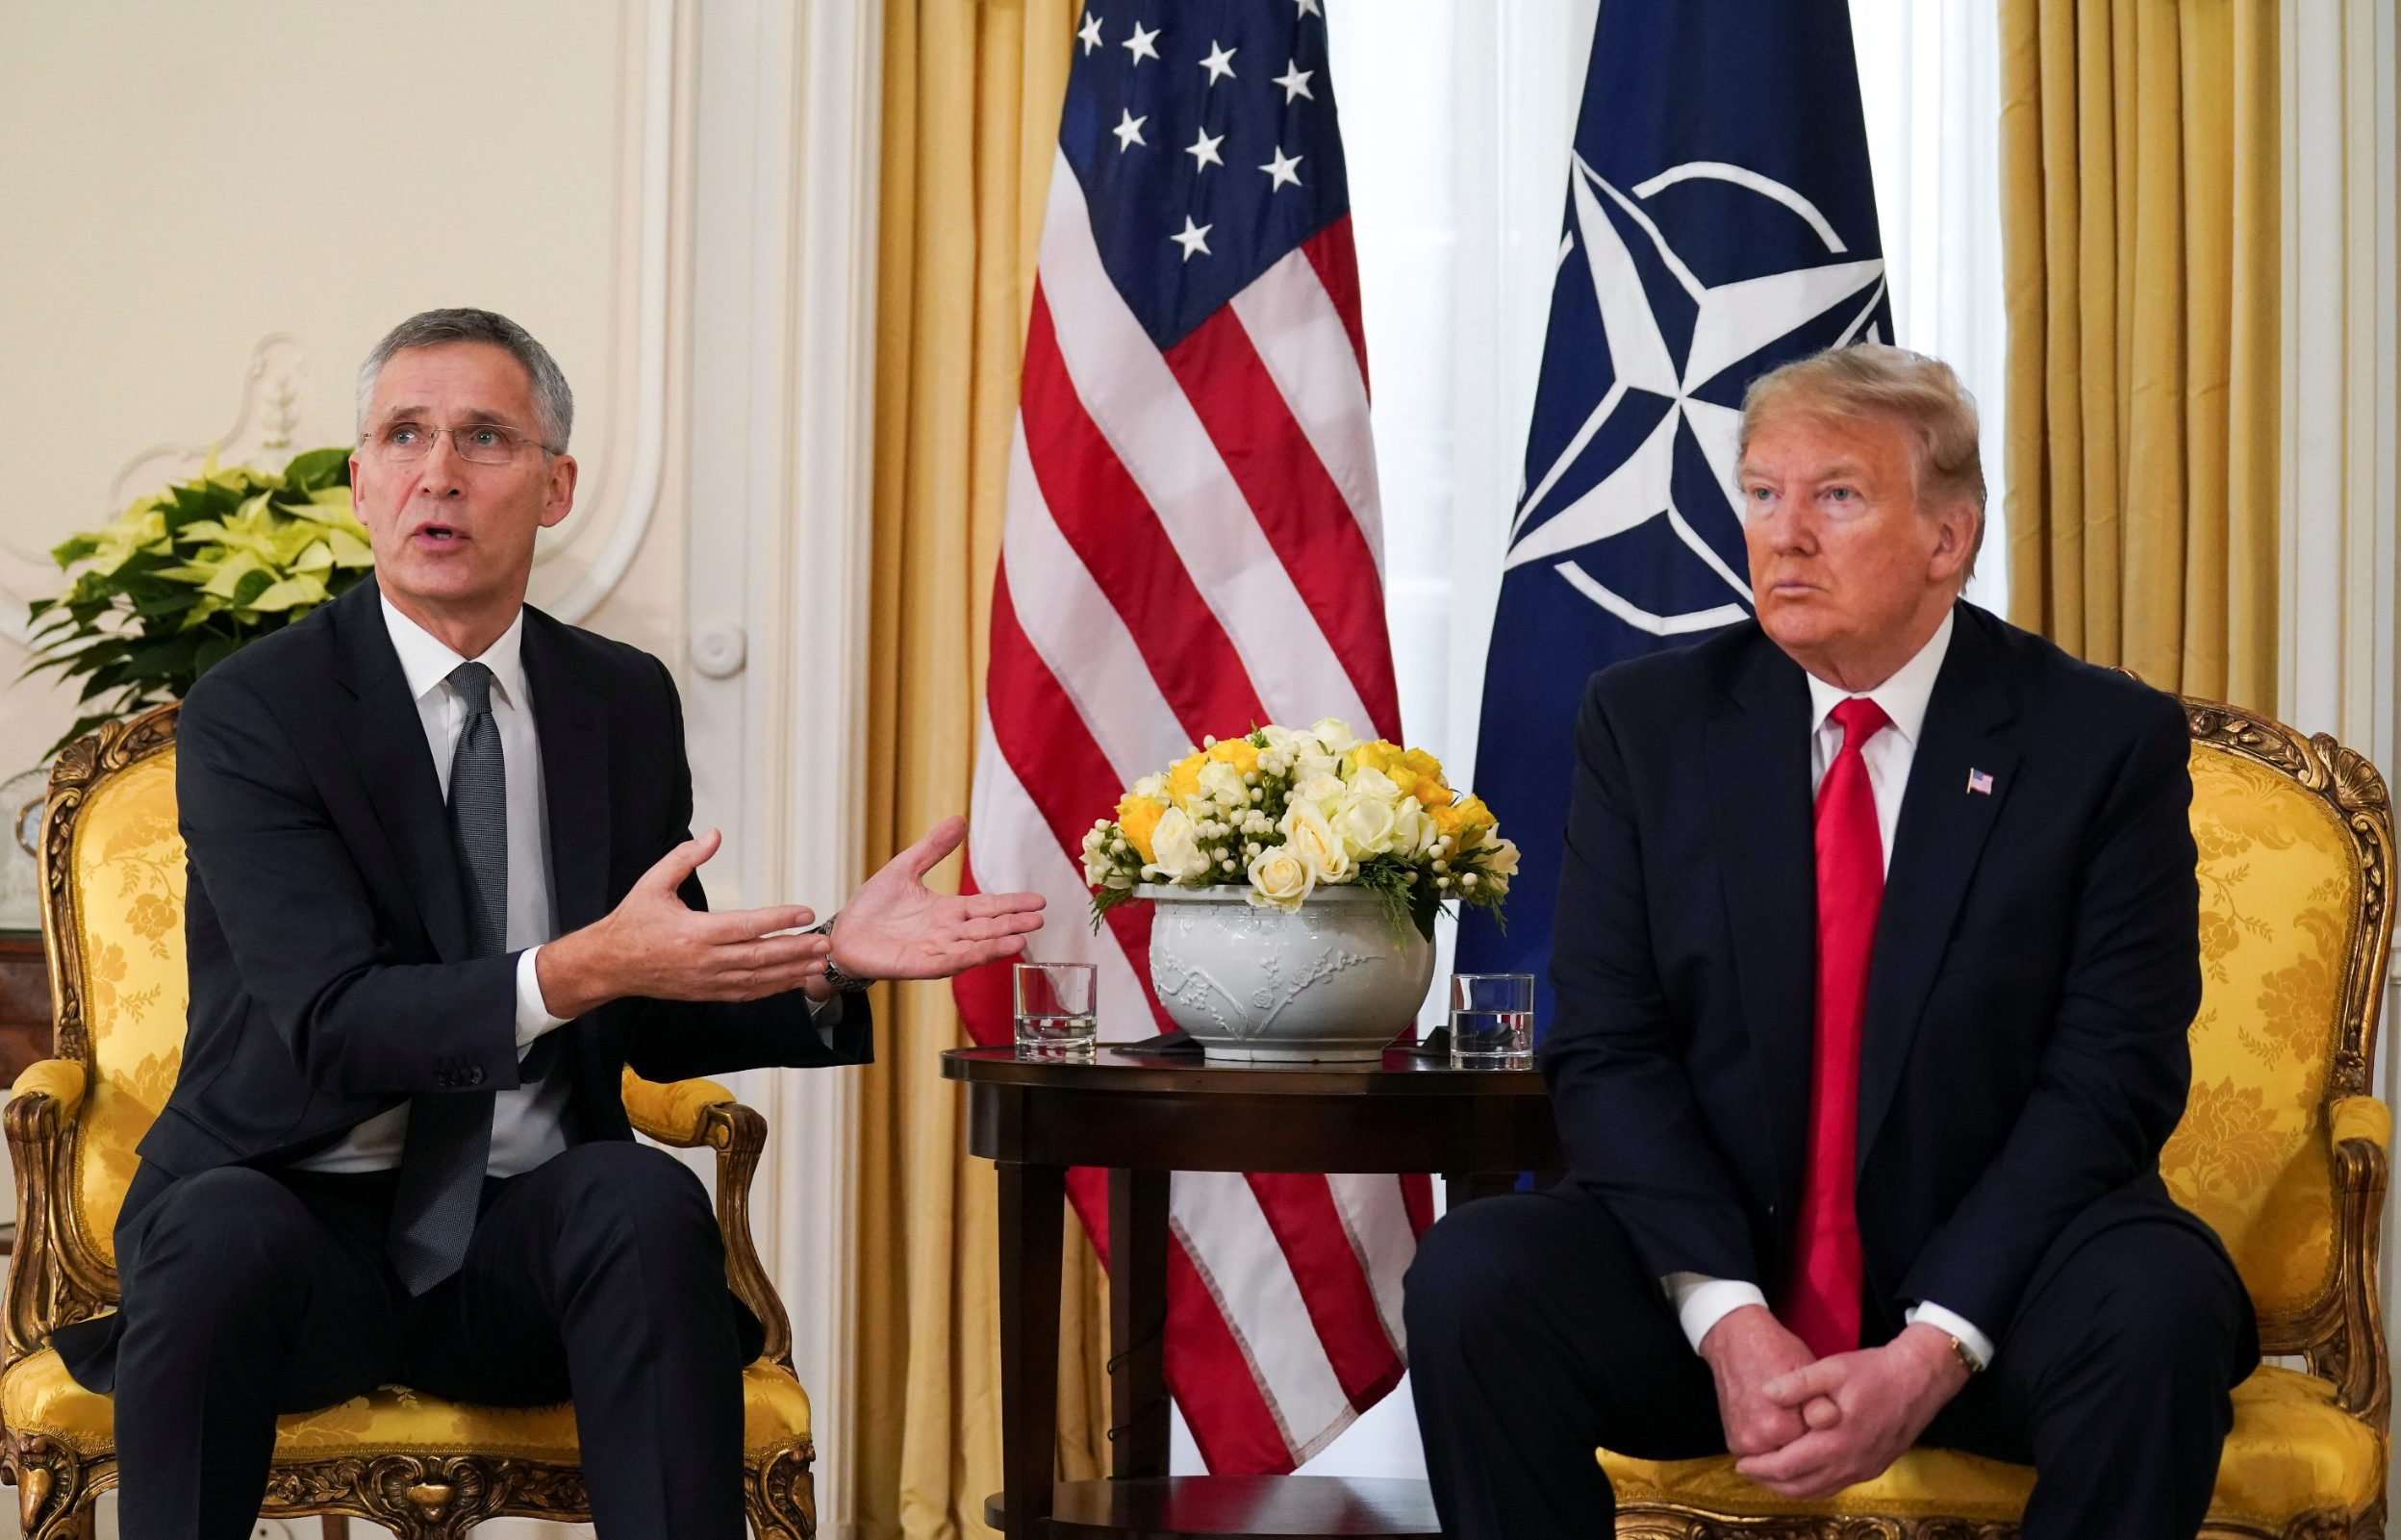 U.S. President Donald Trump meets with NATO Secretary General Jens Stoltenberg, ahead of the NATO summit in Watford, in London, Britain, December 3, 2019. REUTERS/Kevin Lamarque